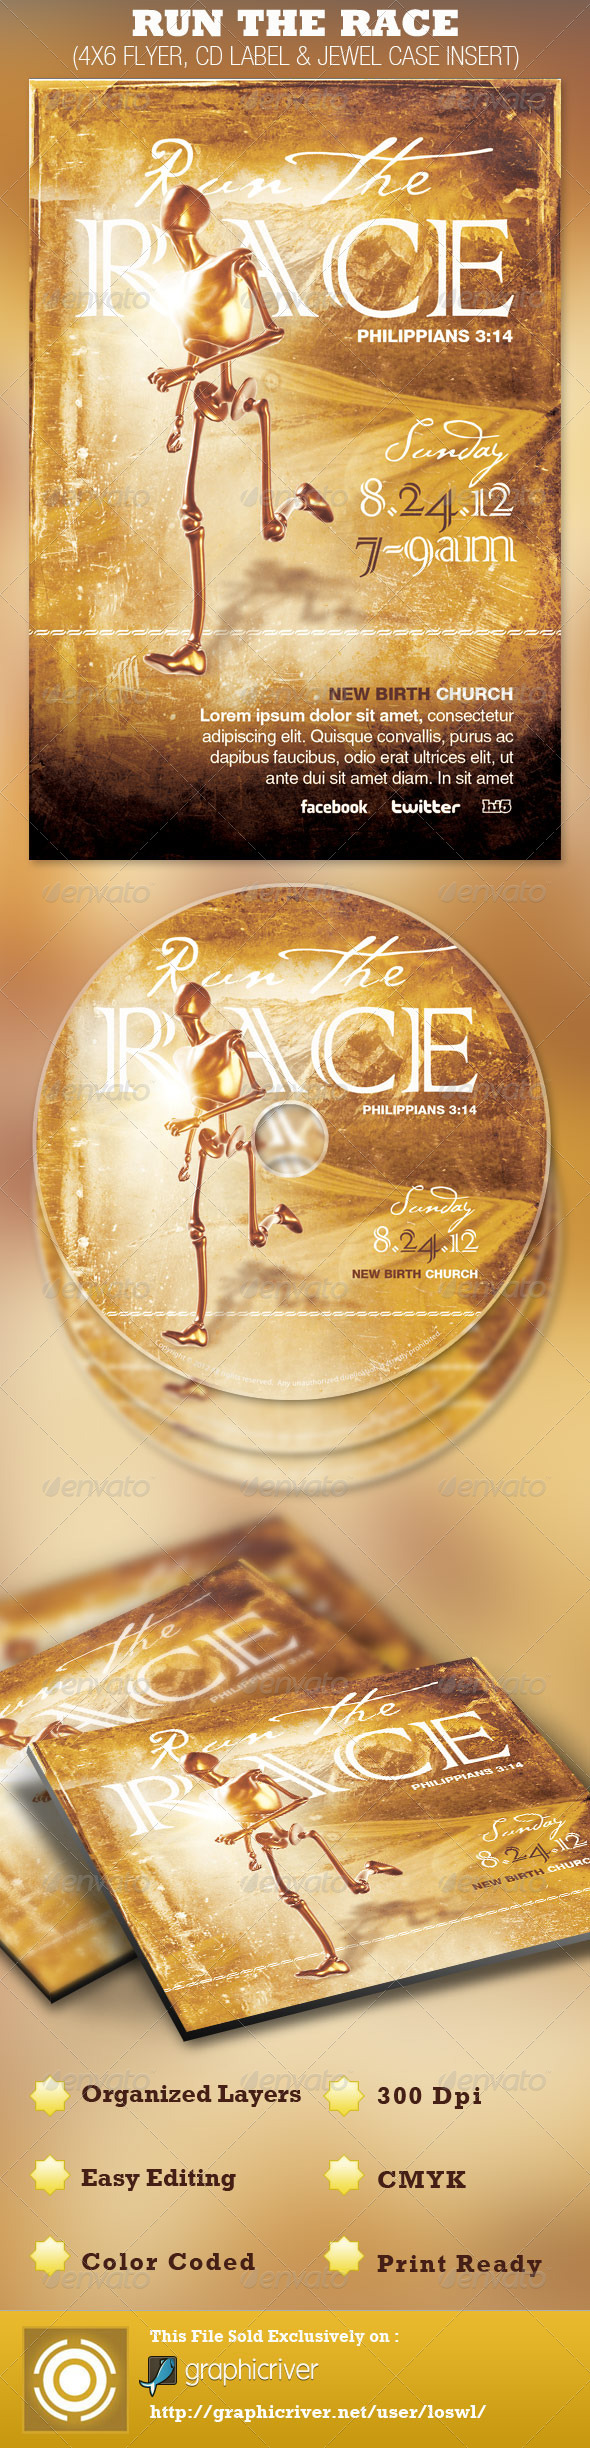 Run the Race Church Flyer and CD Template - Church Flyers